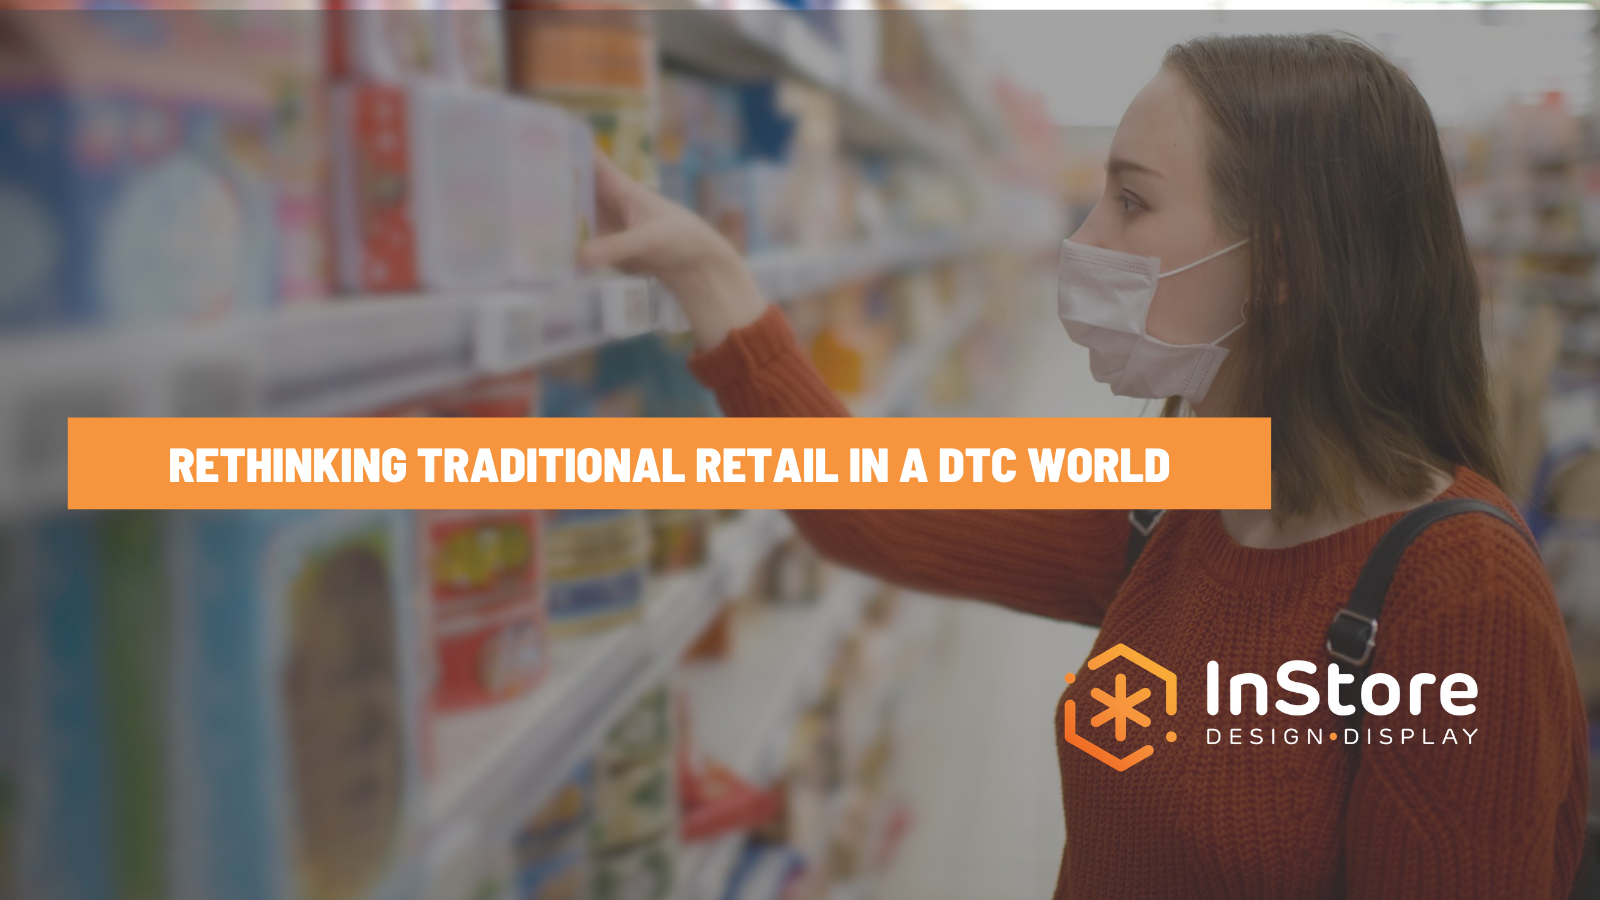 Rethinking Retail in a Direct-to-Consumer (DTC) World